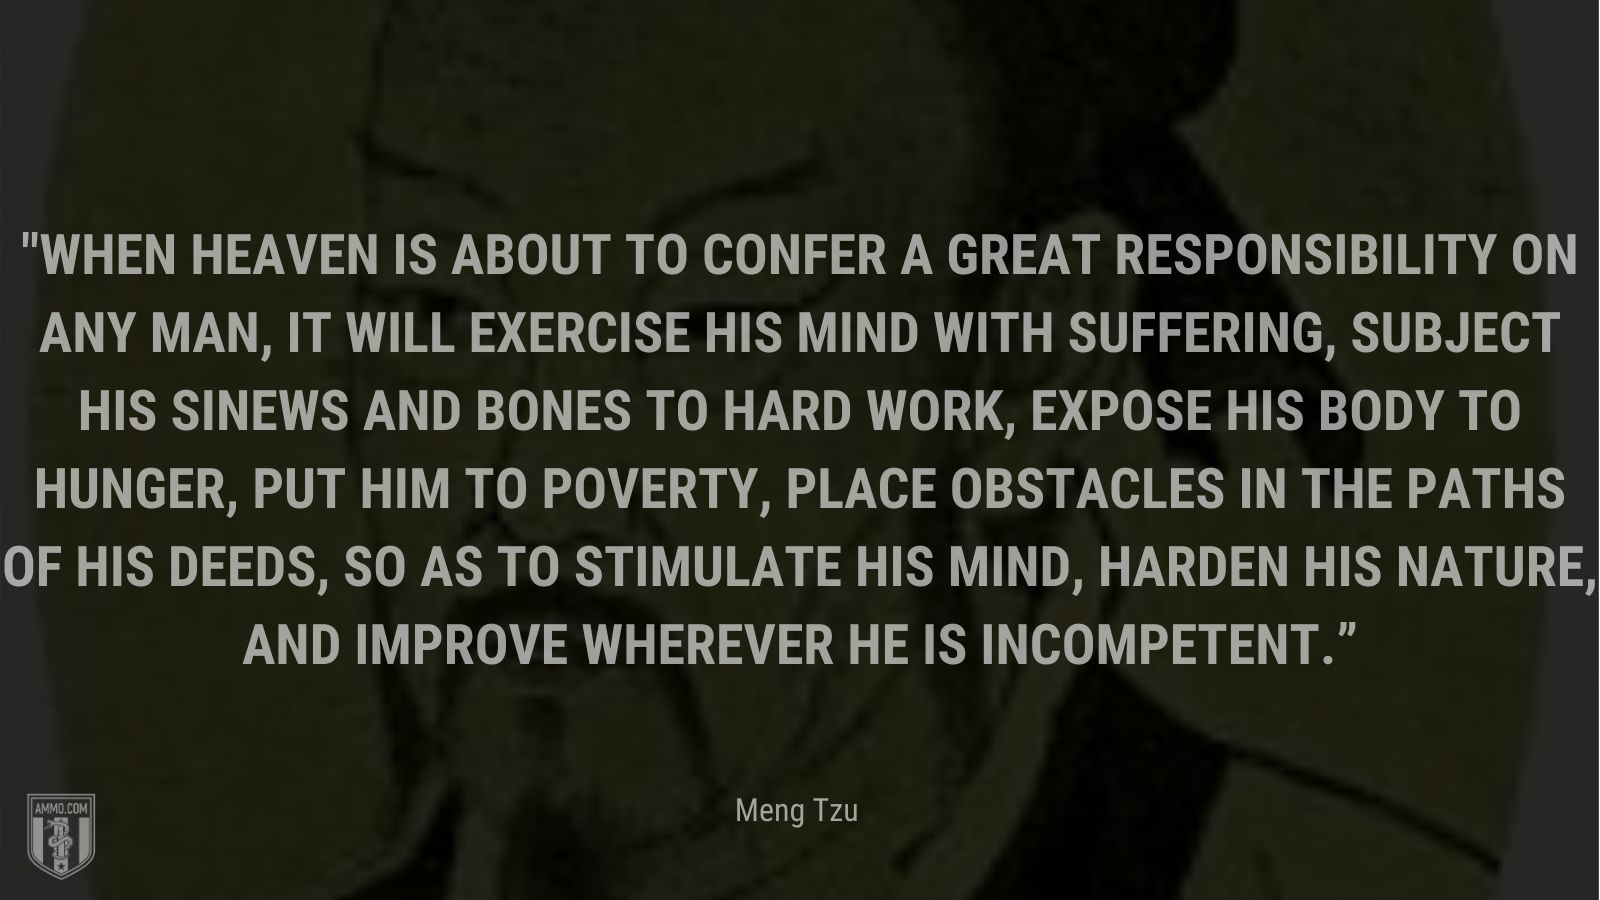 """""""When heaven is about to confer a great responsibility on any man, it will exercise his mind with suffering, subject his sinews and bones to hard work, expose his body to hunger, put him to poverty, place obstacles in the paths of his deeds, so as to stimulate his mind, harden his nature, and improve wherever he is incompetent."""" - Meng Tzu"""